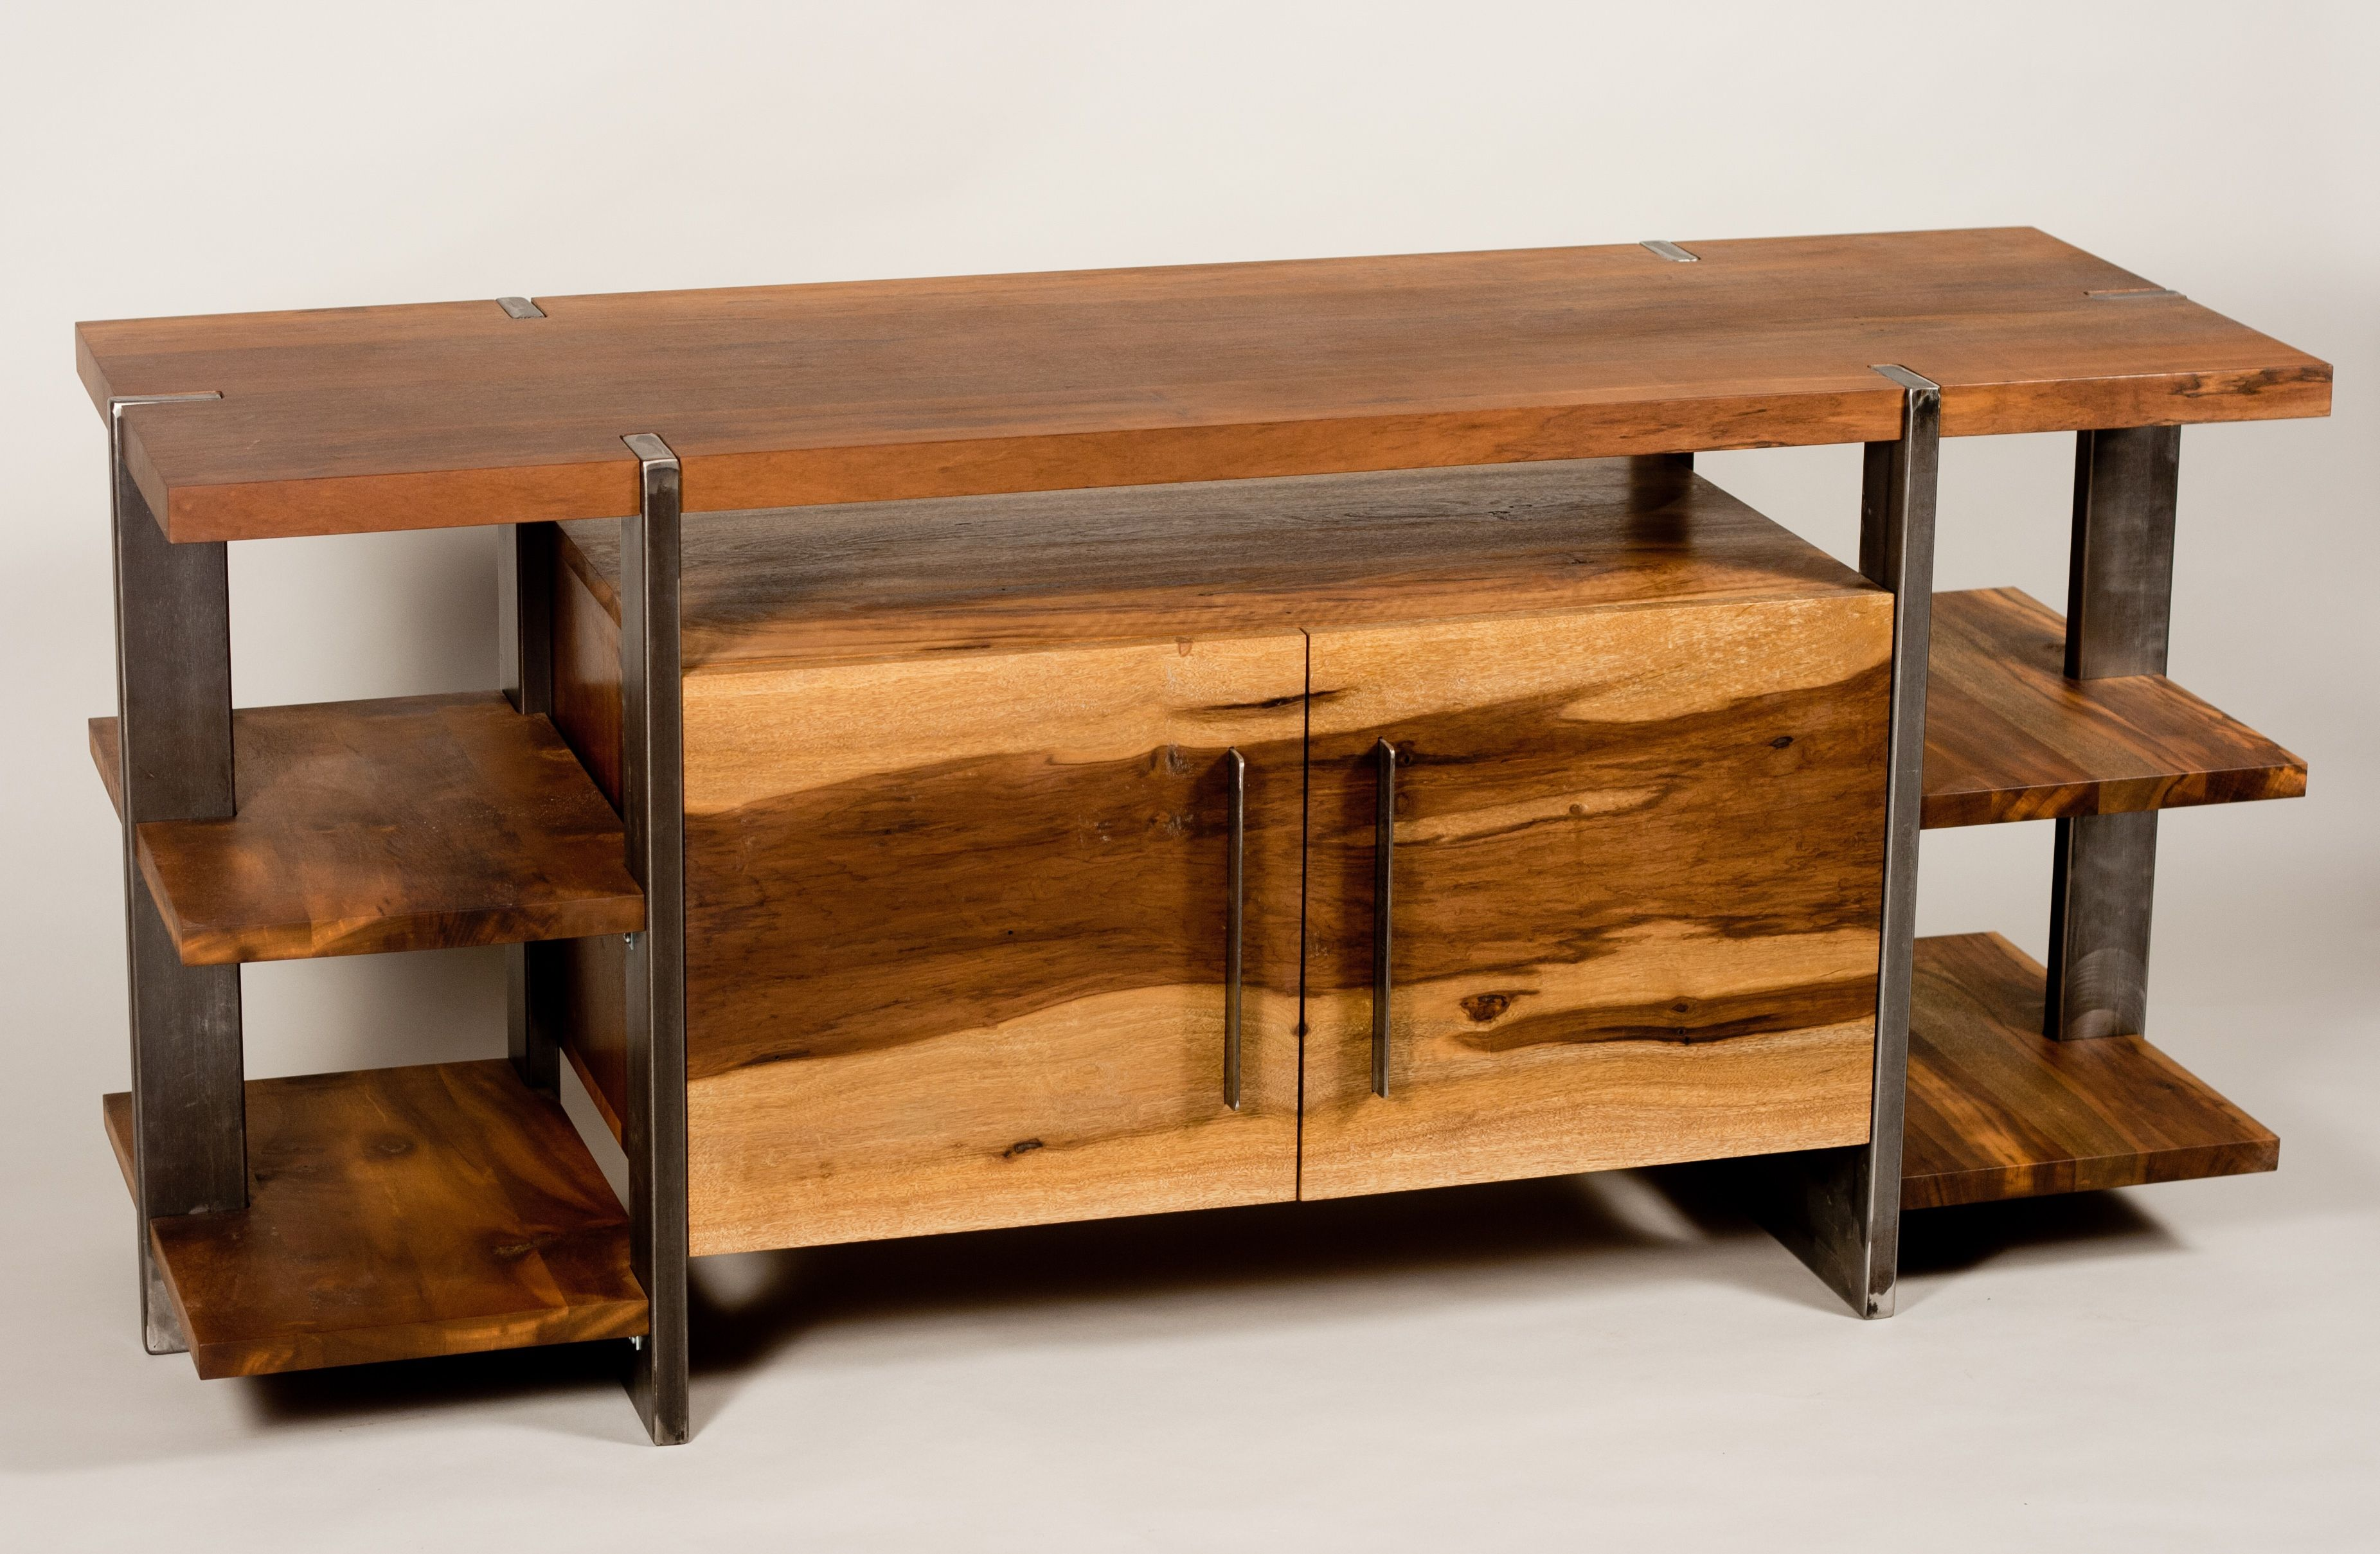 custom wood and metal entertainment center should an individual  - custom wood and metal entertainment center should an individual want tomaster woodworking skills try